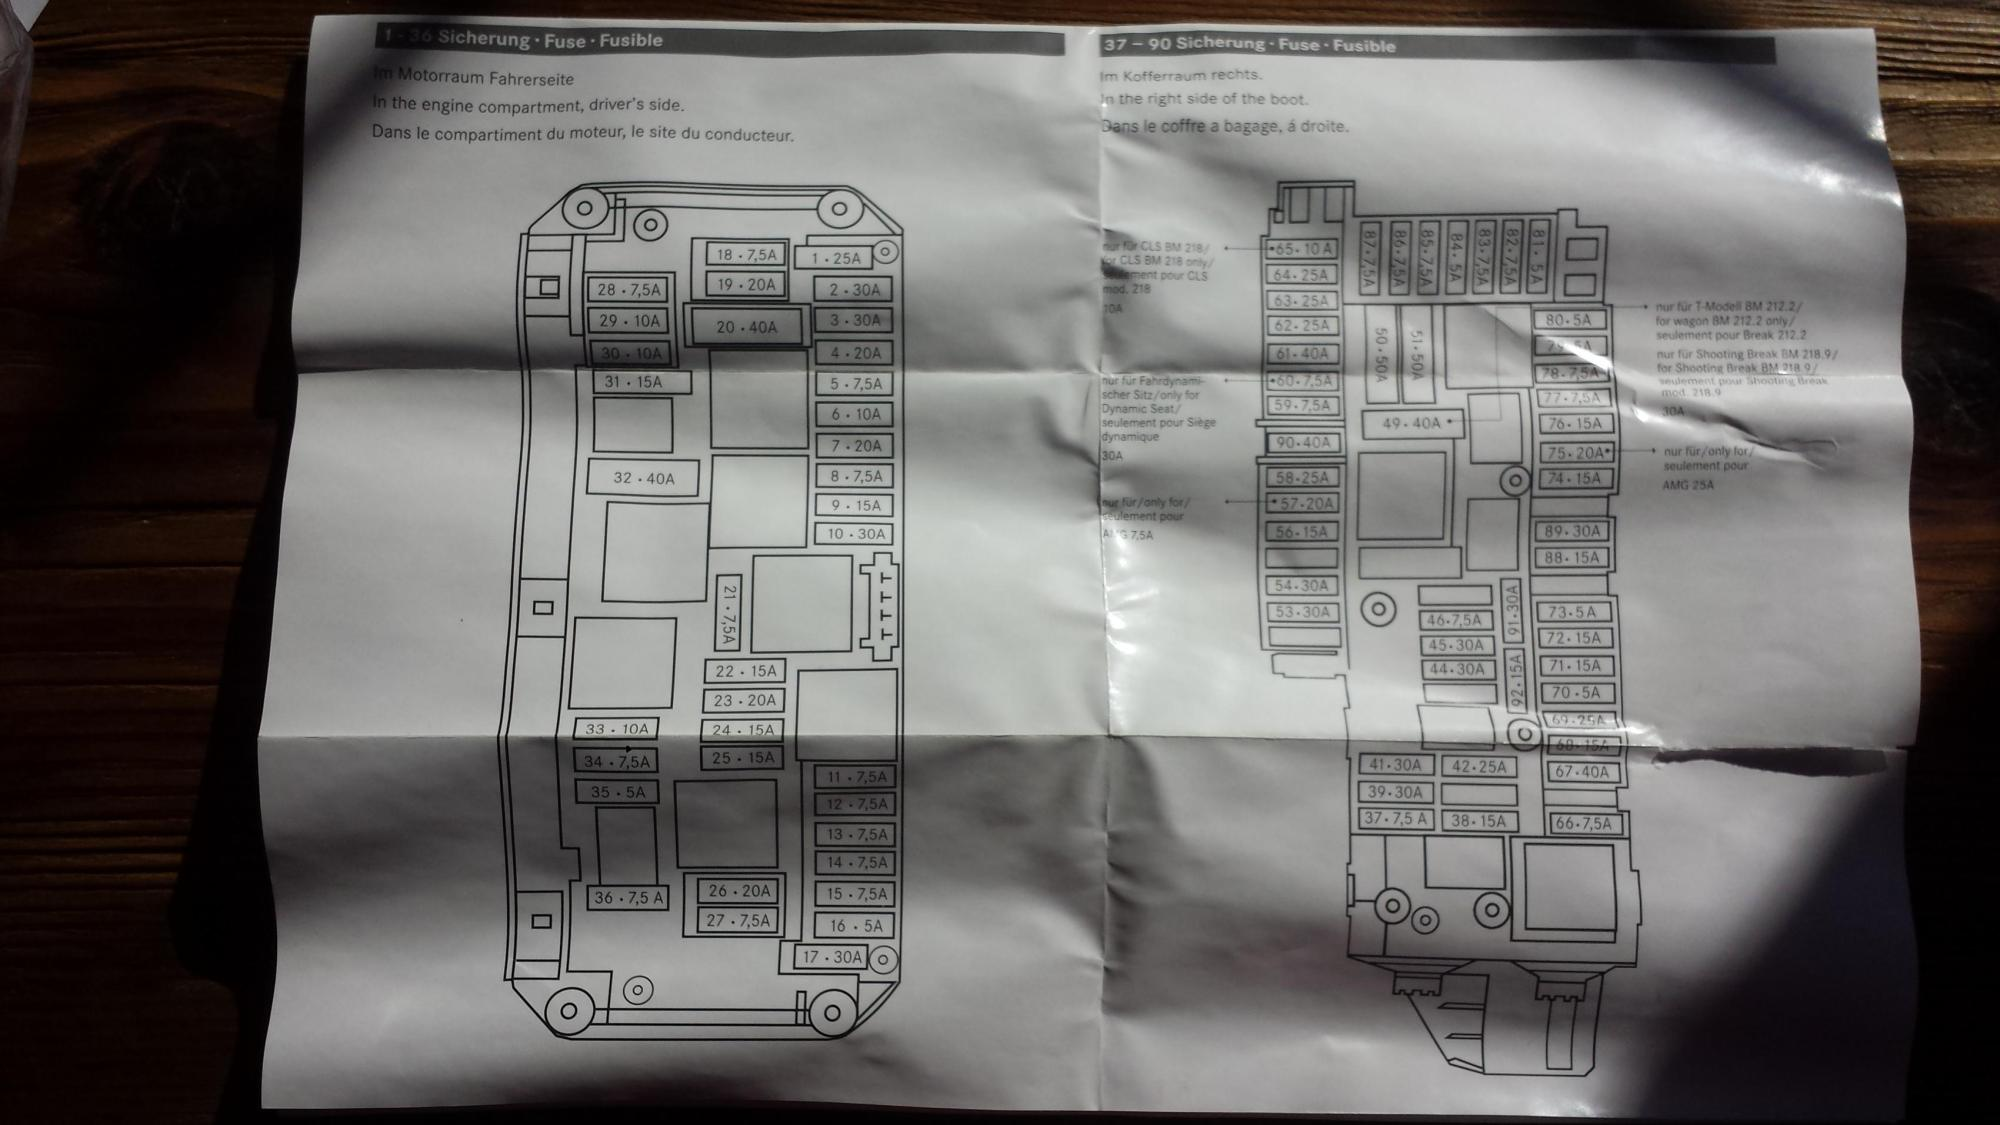 hight resolution of 2013 w212 e350 eclass fuse panel diagram chart mbworld org forums 2013 mercedes e350 fuse diagram